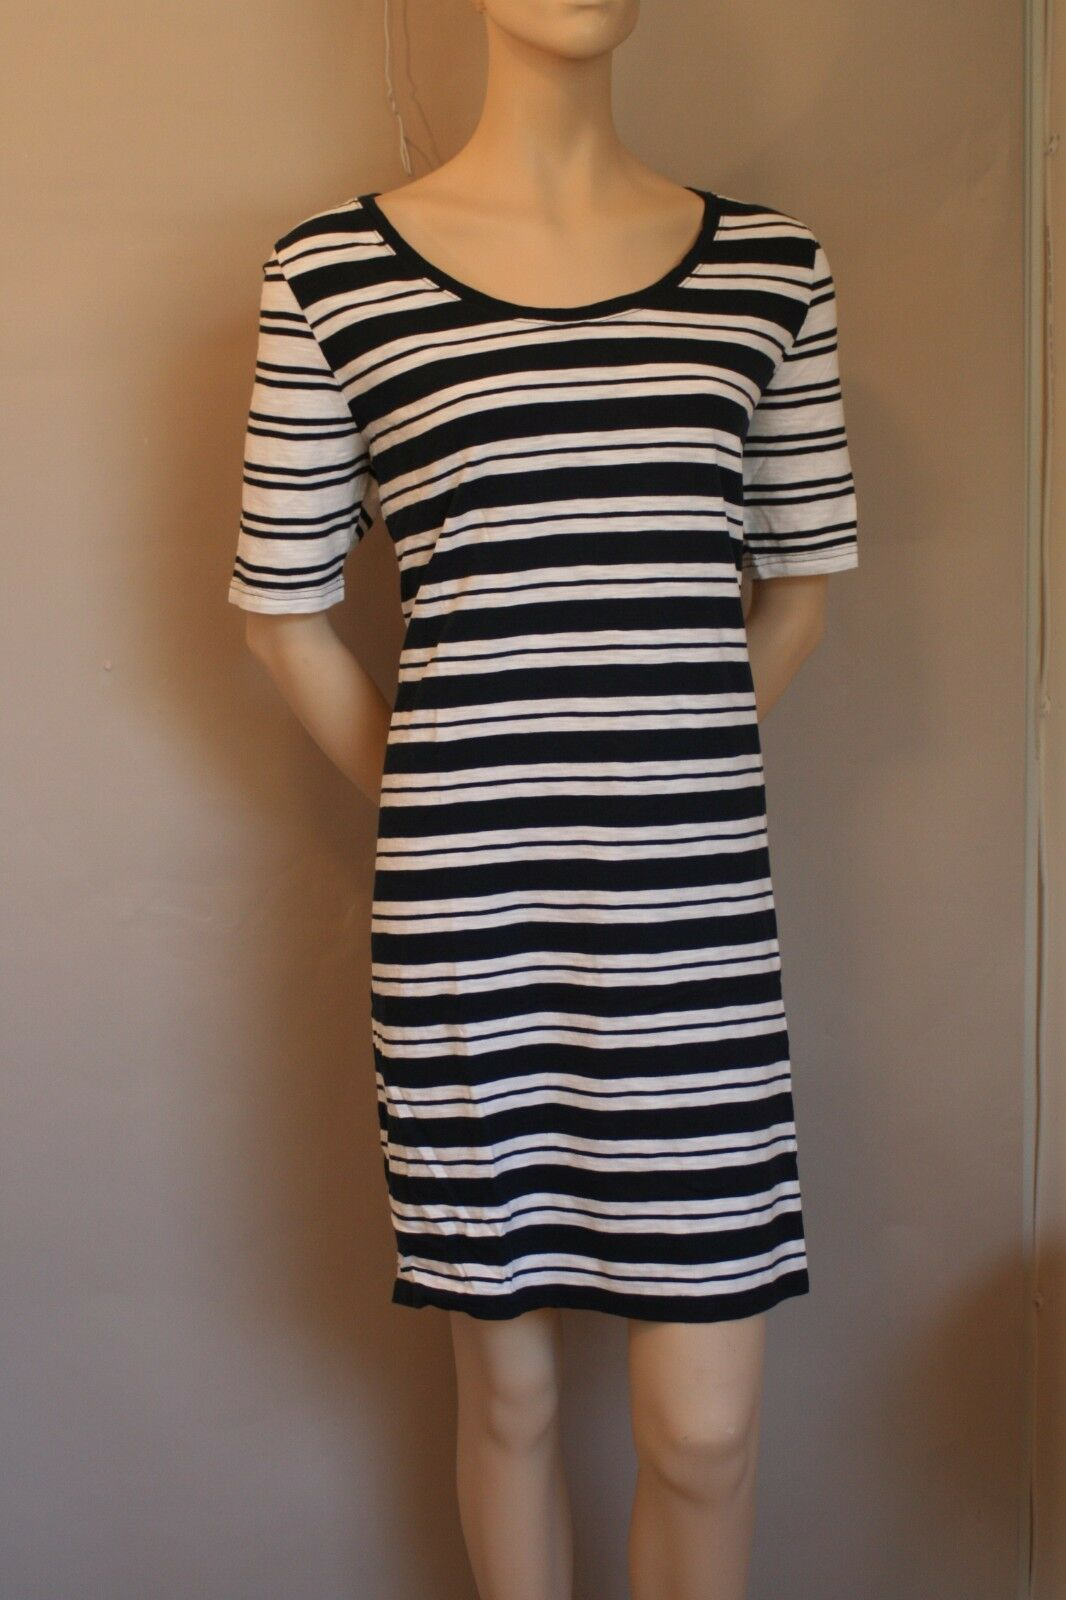 Vineyard Vines Stripe Navy bluee and White Dress Womens Size XL  NWT